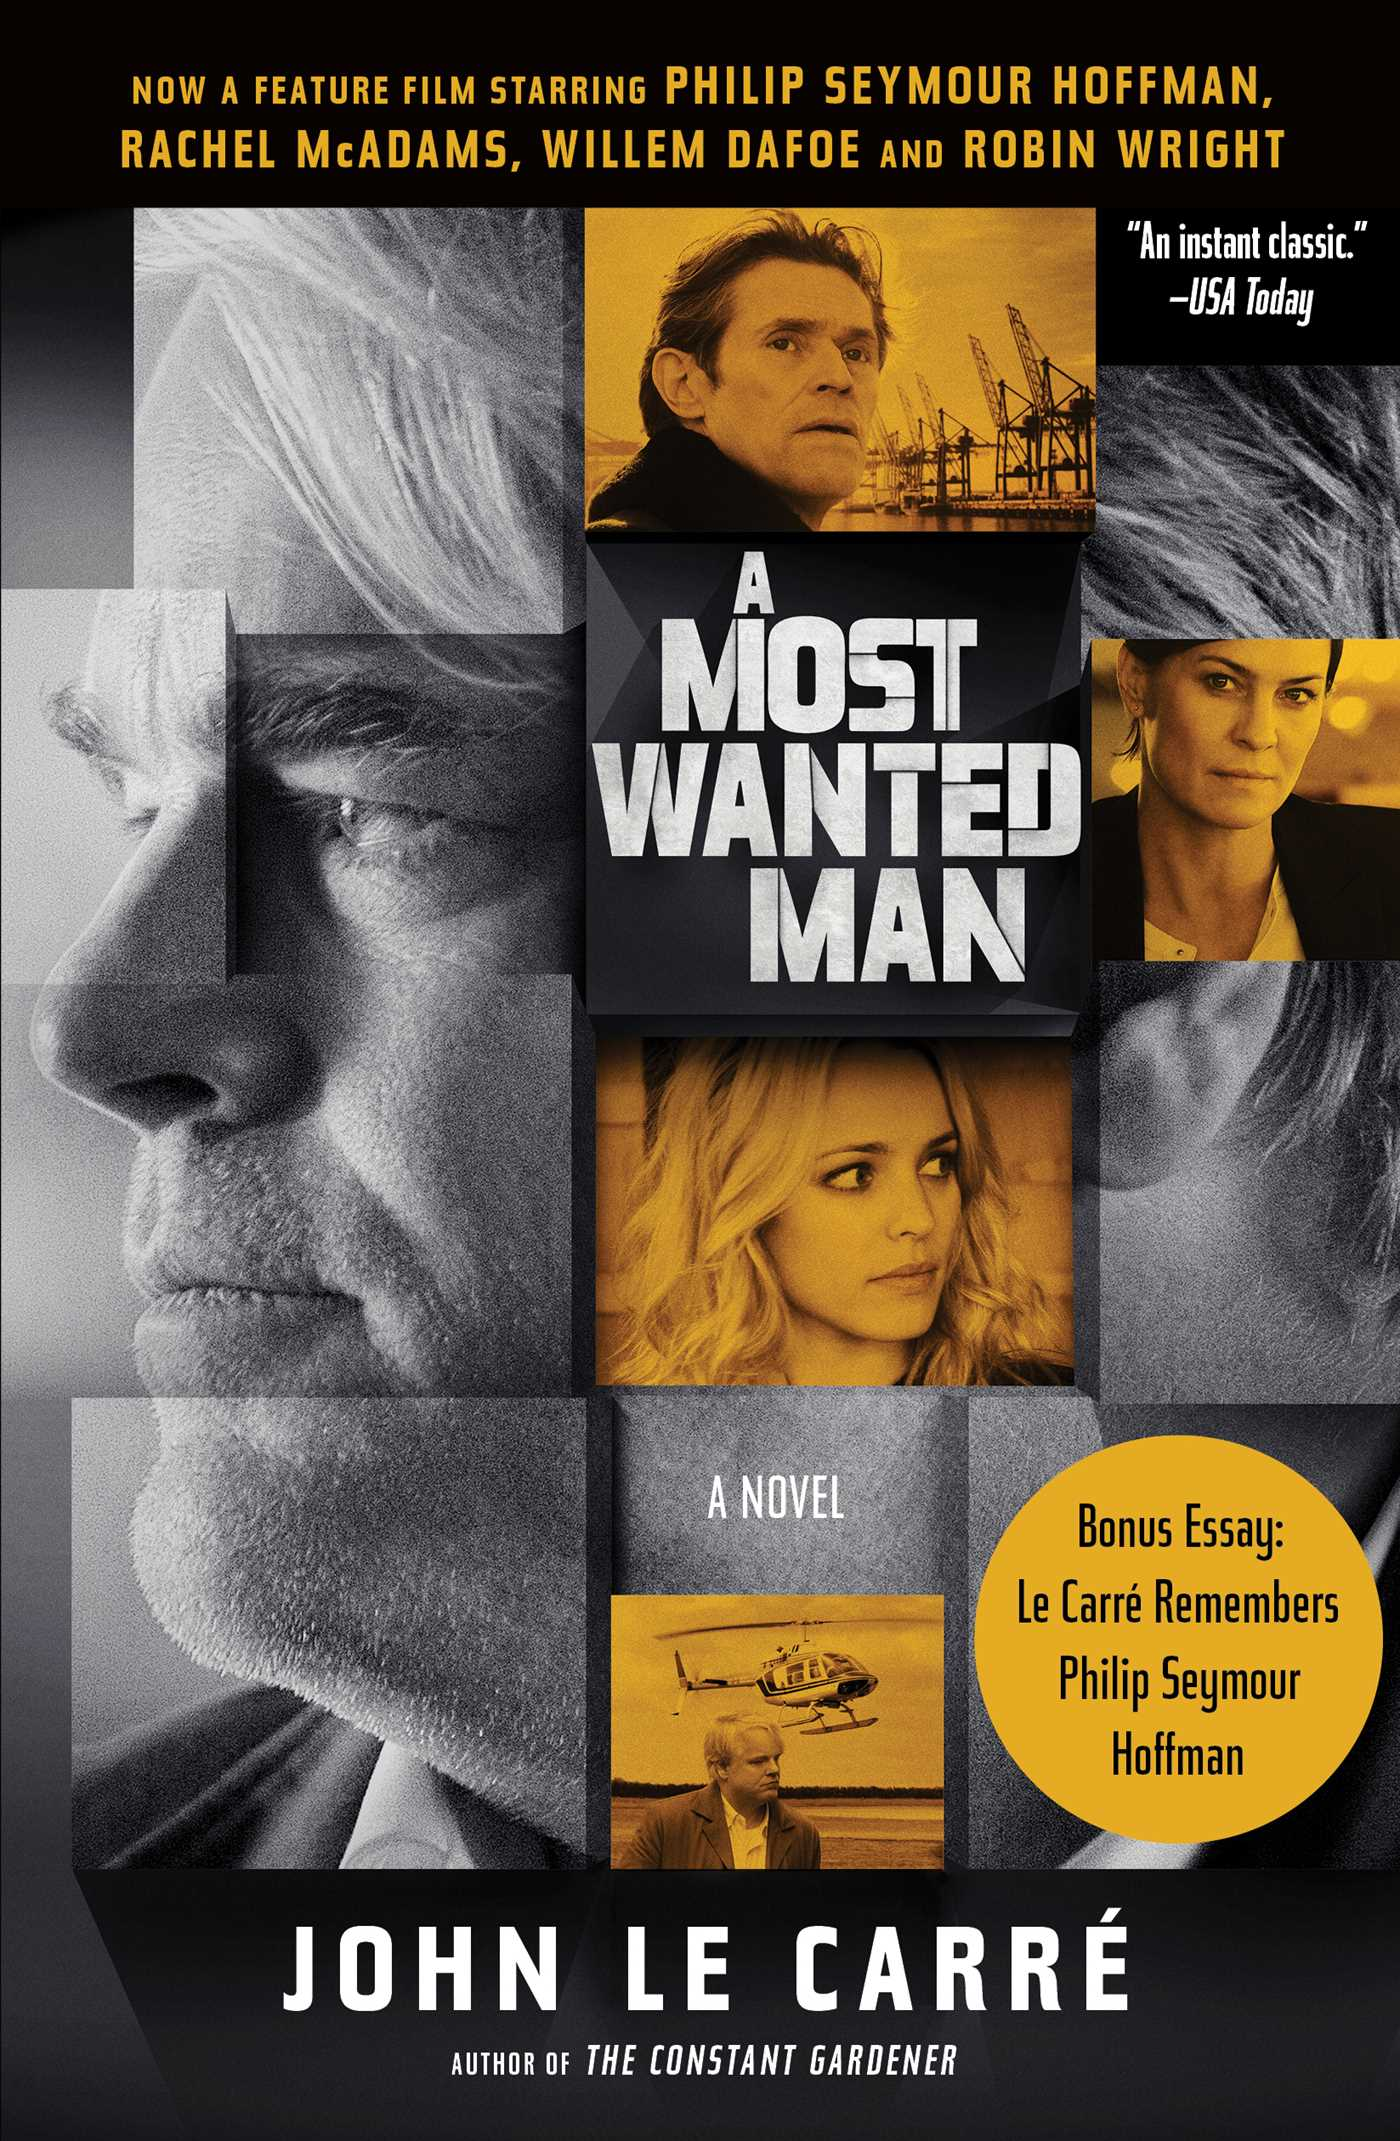 Most-wanted-man-9781476740140_hr